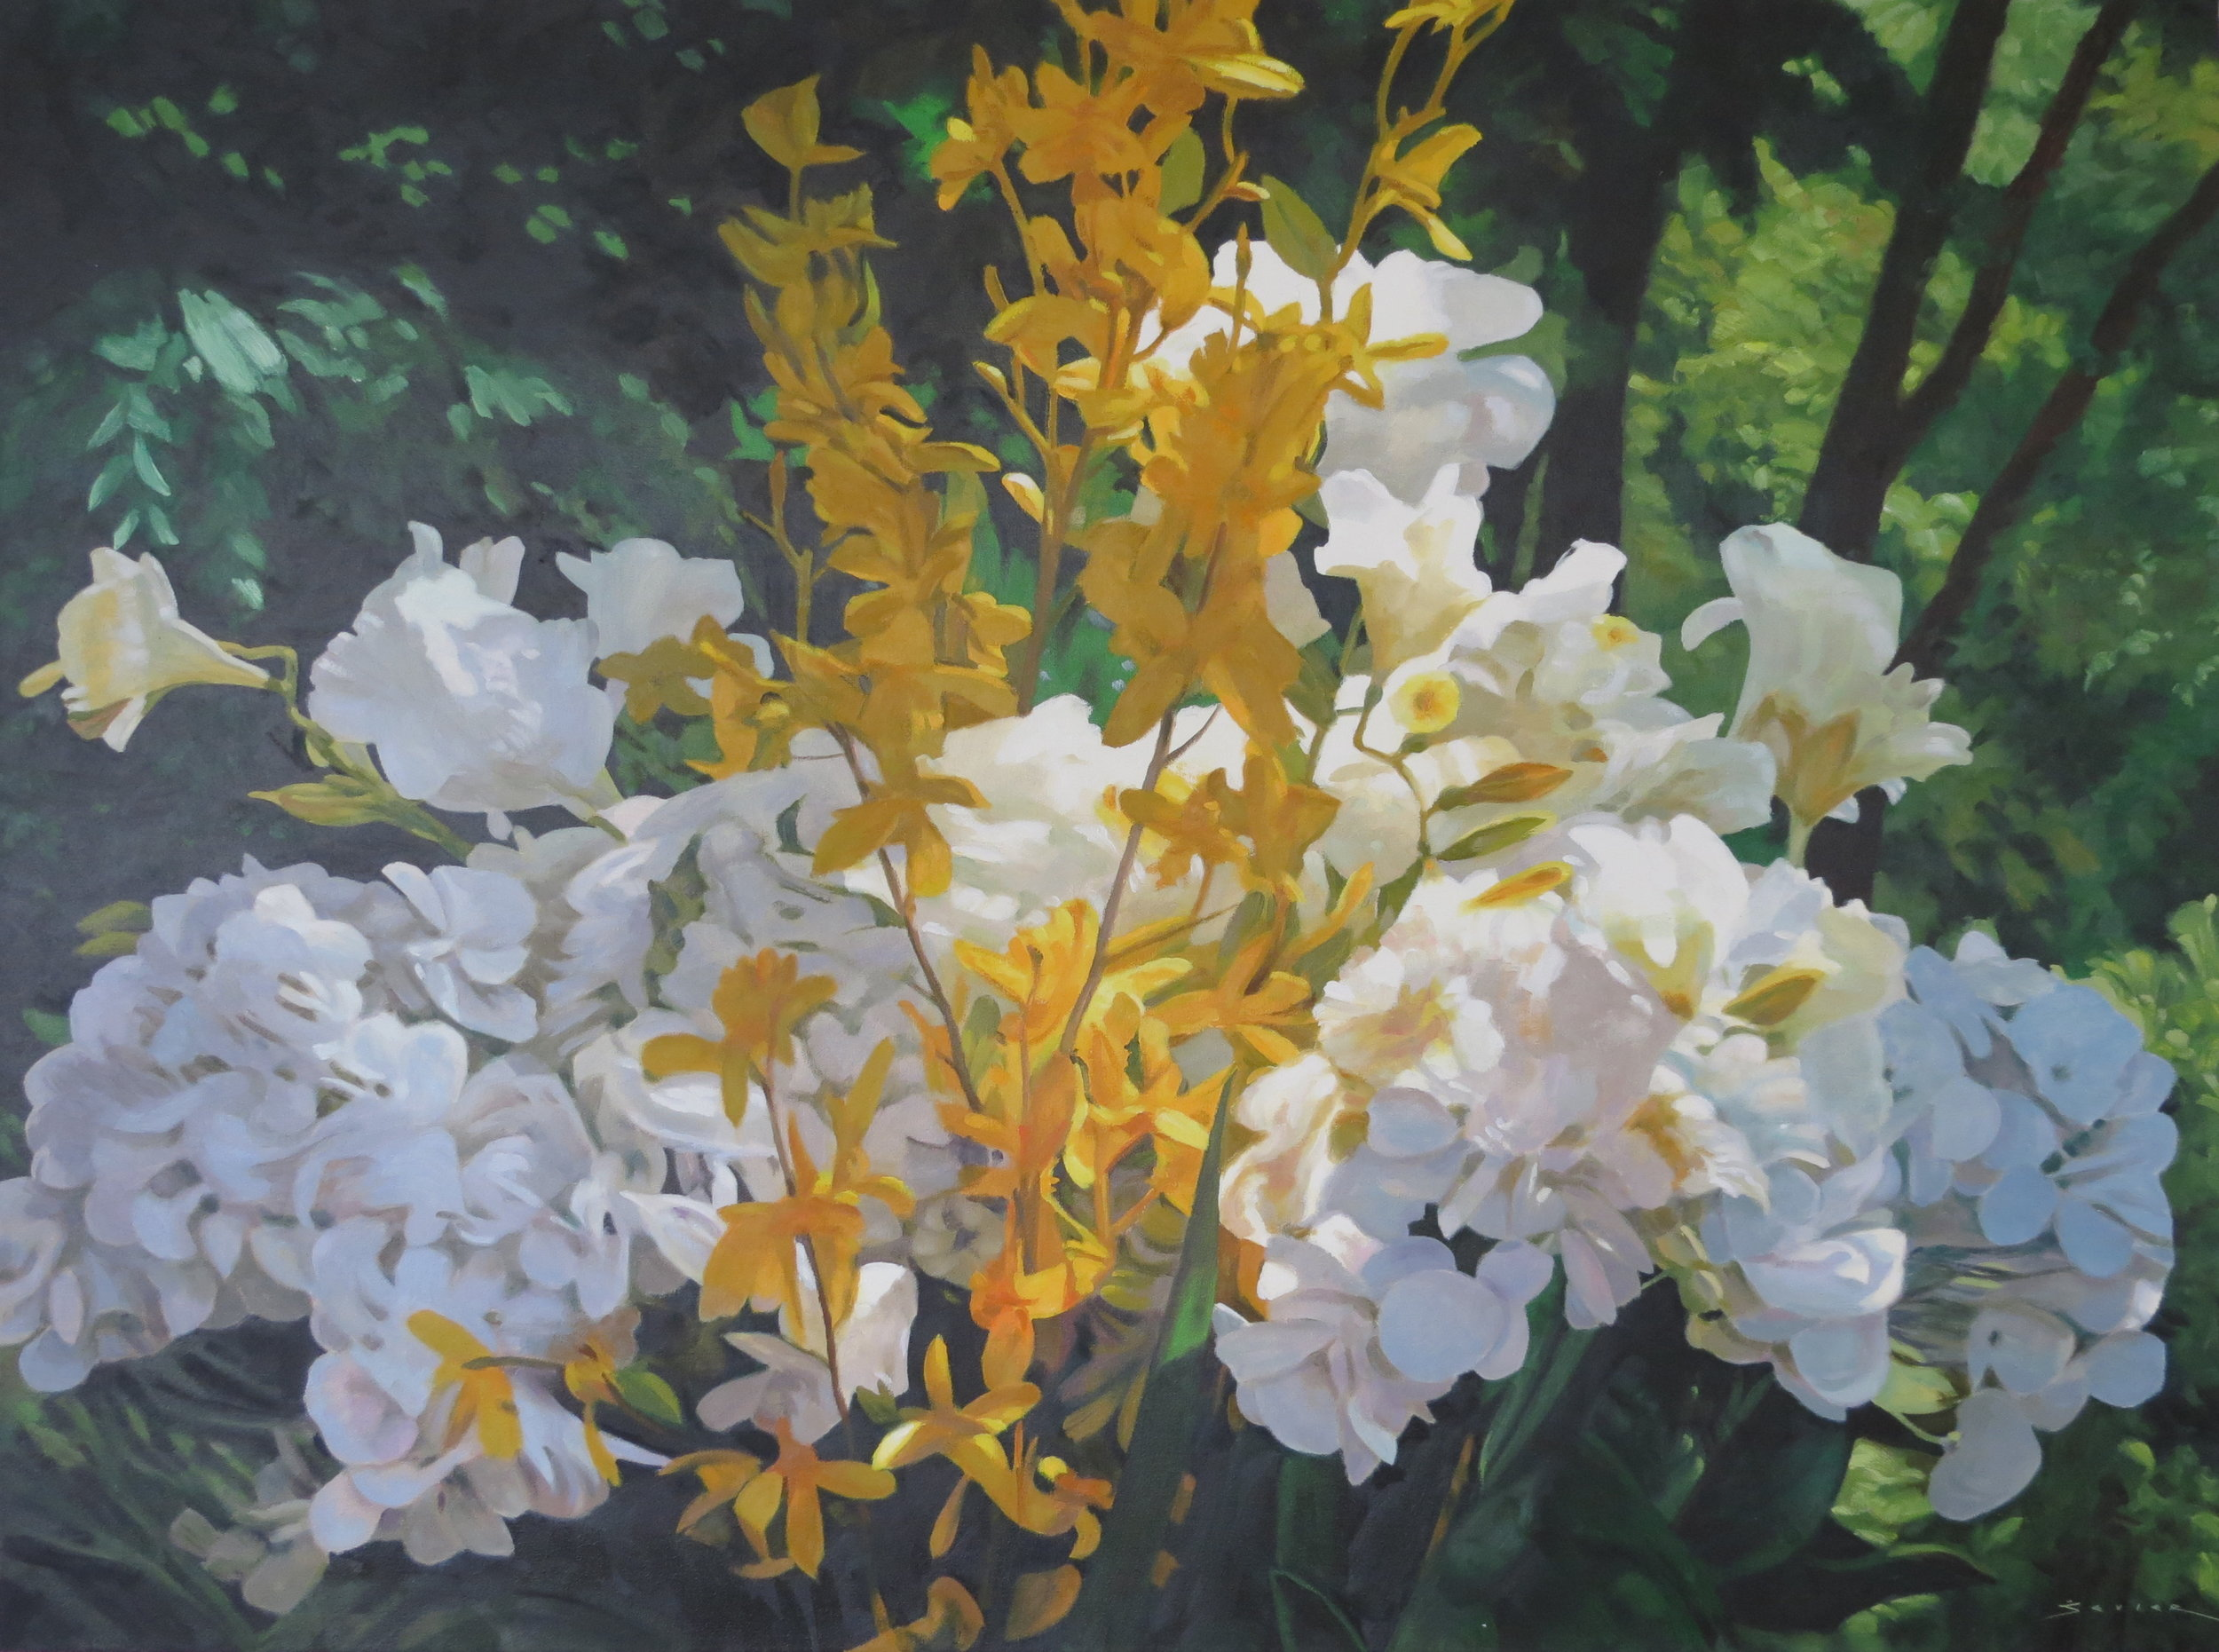 Flower Study in White, Yellow & Green,  36 x 48, oil